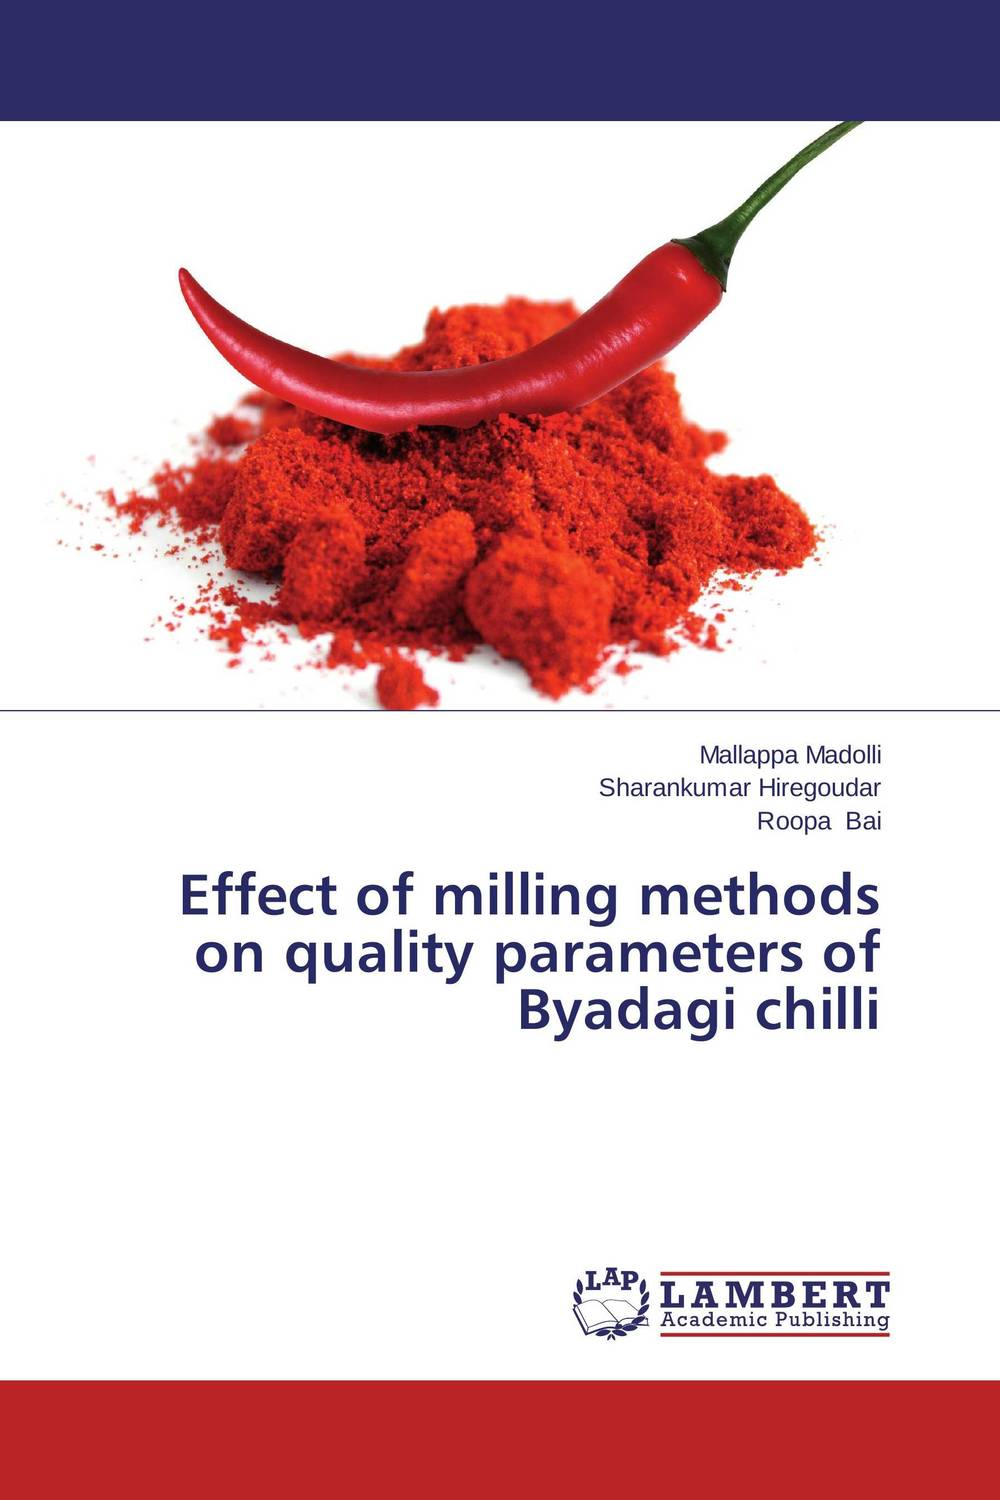 Effect of milling methods on quality parameters of Byadagi chilli belousov a security features of banknotes and other documents methods of authentication manual денежные билеты бланки ценных бумаг и документов